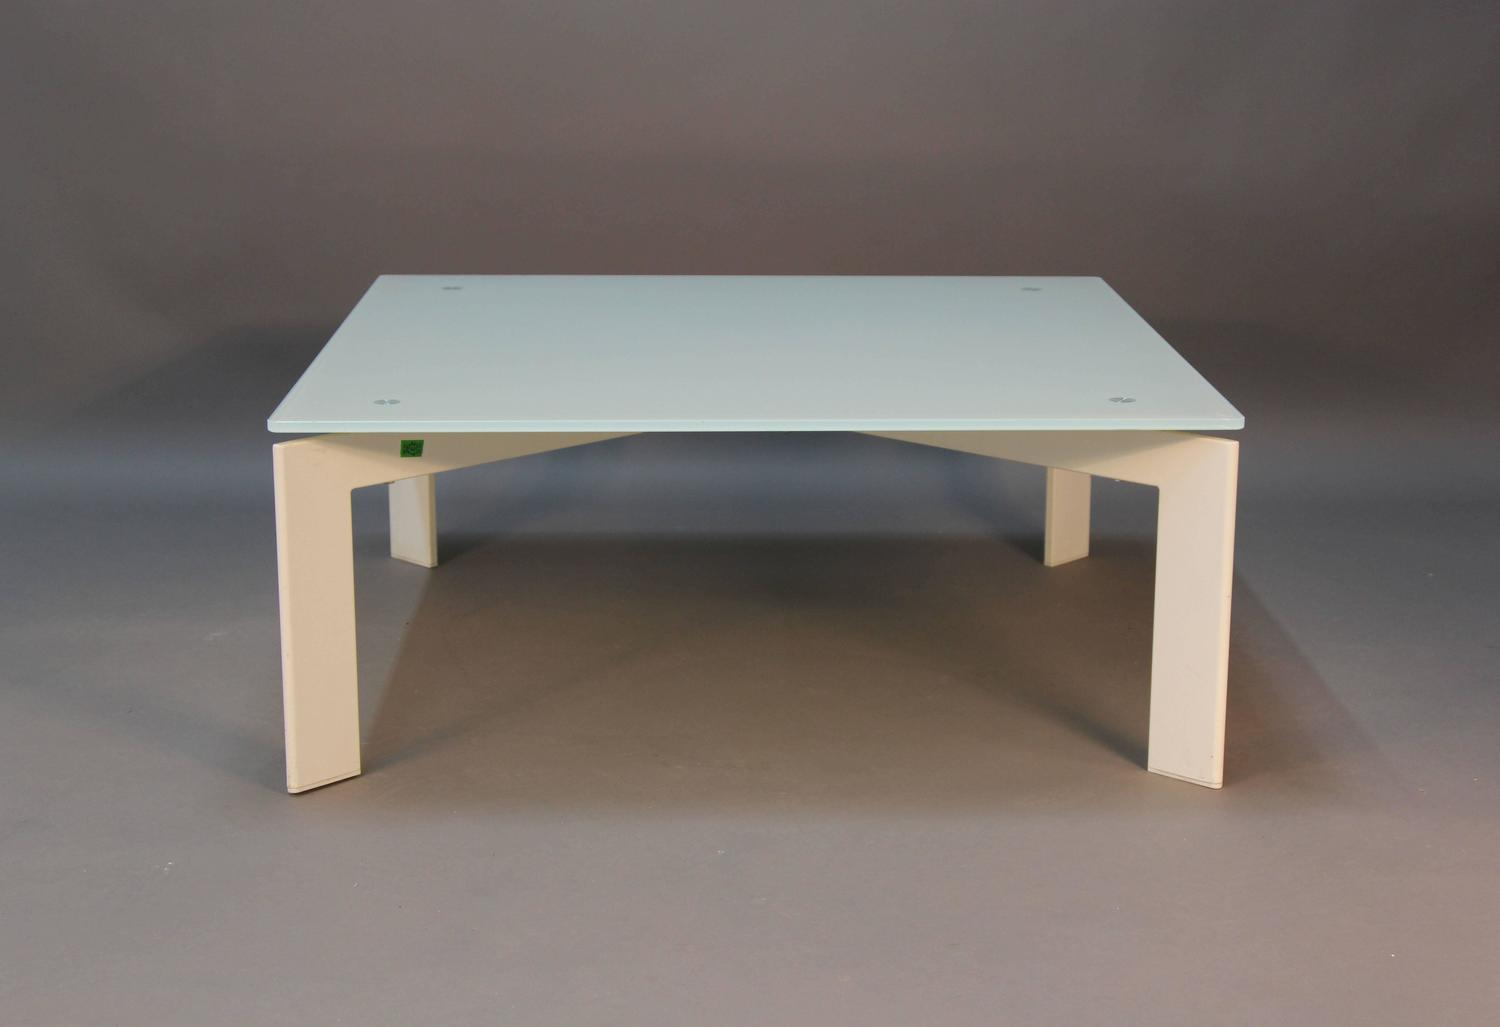 Modern Glass Coffee Table White Base With Frosted Glass For Sale At 1stdibs